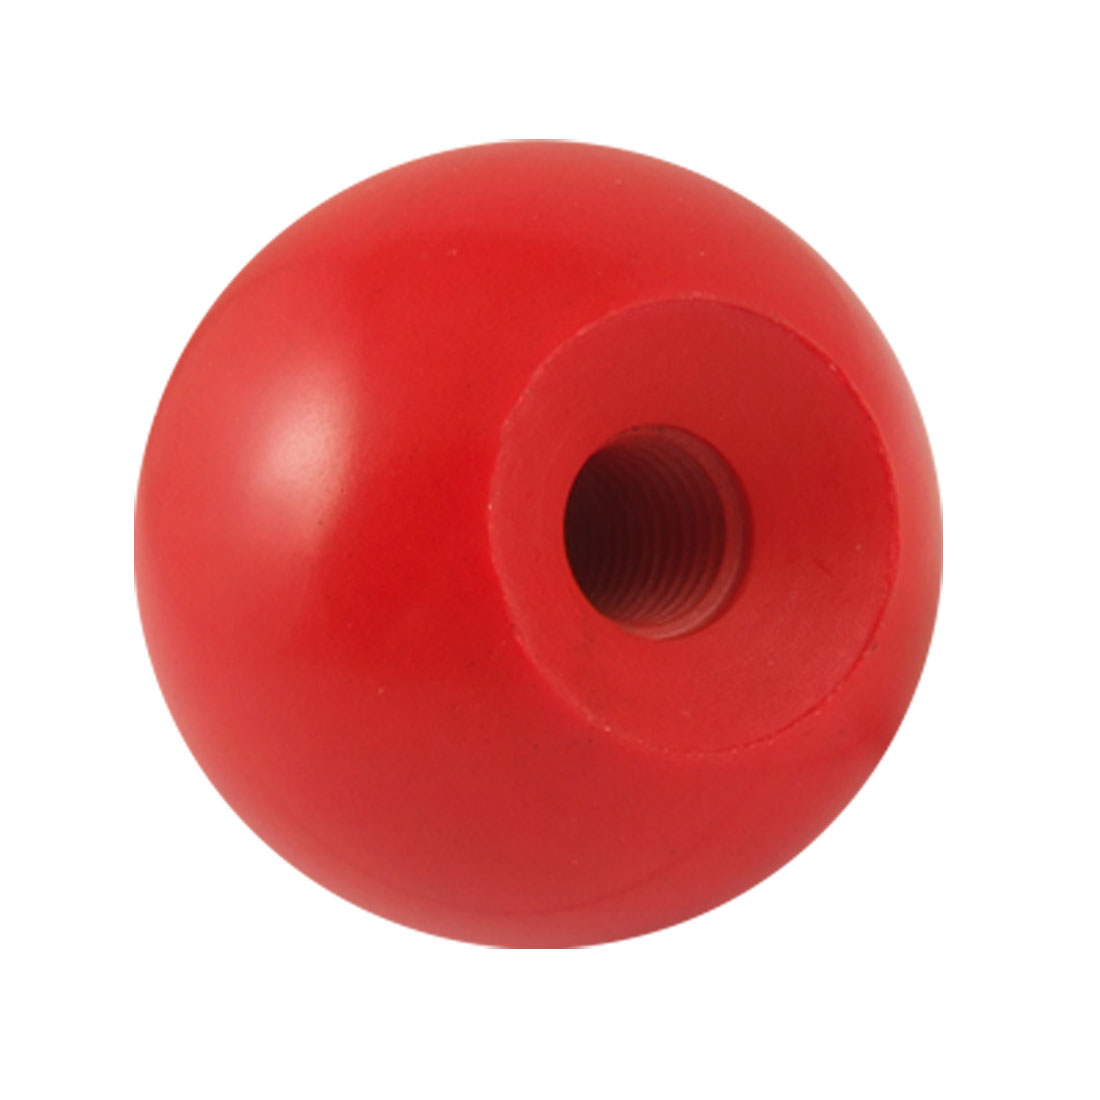 Solid Red Duroplastic 40mm Diameter Handling Ball Knob